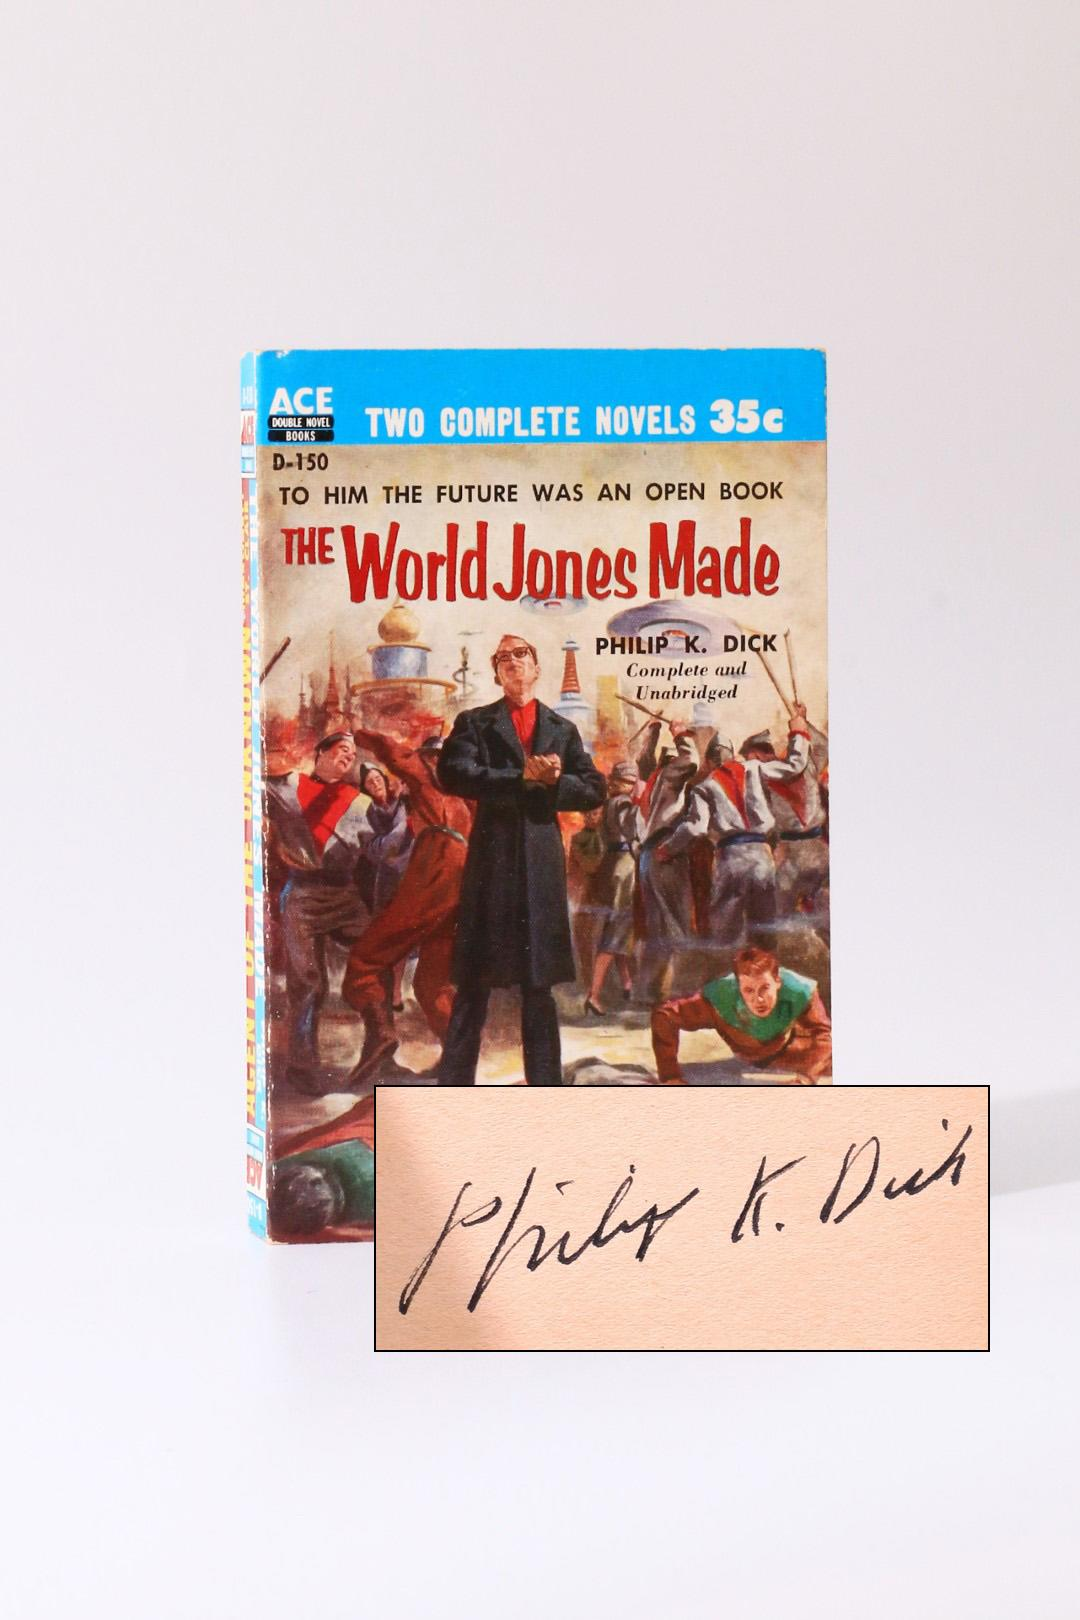 Philip K. Dick - The World Jones Made - Ace Books, 1956, Signed First Edition.